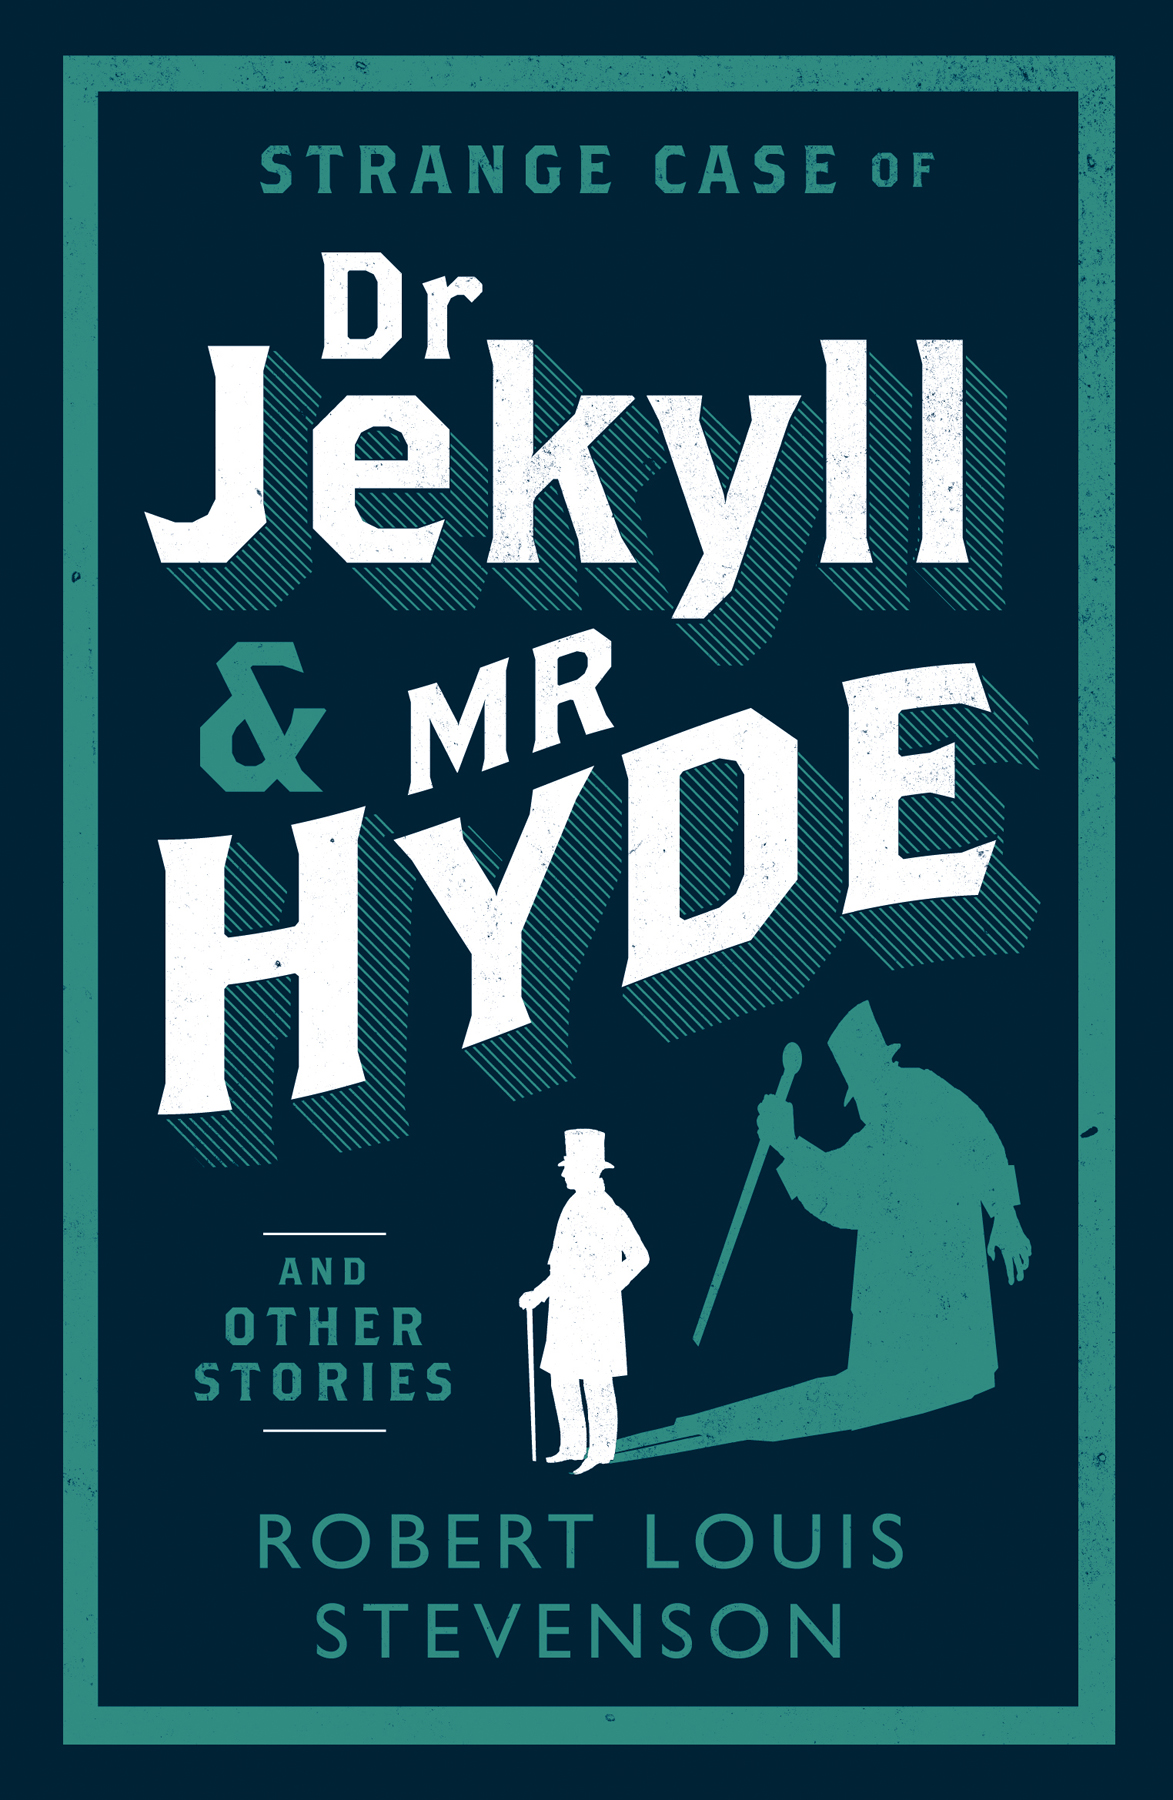 a comparison of dr jekyll and mr hyde two sides of the same character in the novella strange case of Read the excerpt from the strange case of dr jekyll and mr hyde with every day, and from both sides of my intelligence, the moral and the intellectual, i thus drew steadily nearer to that truth, by whose partial discovery i have been doomed to such a dreadful shipwreck: that man is not truly one, but truly two.